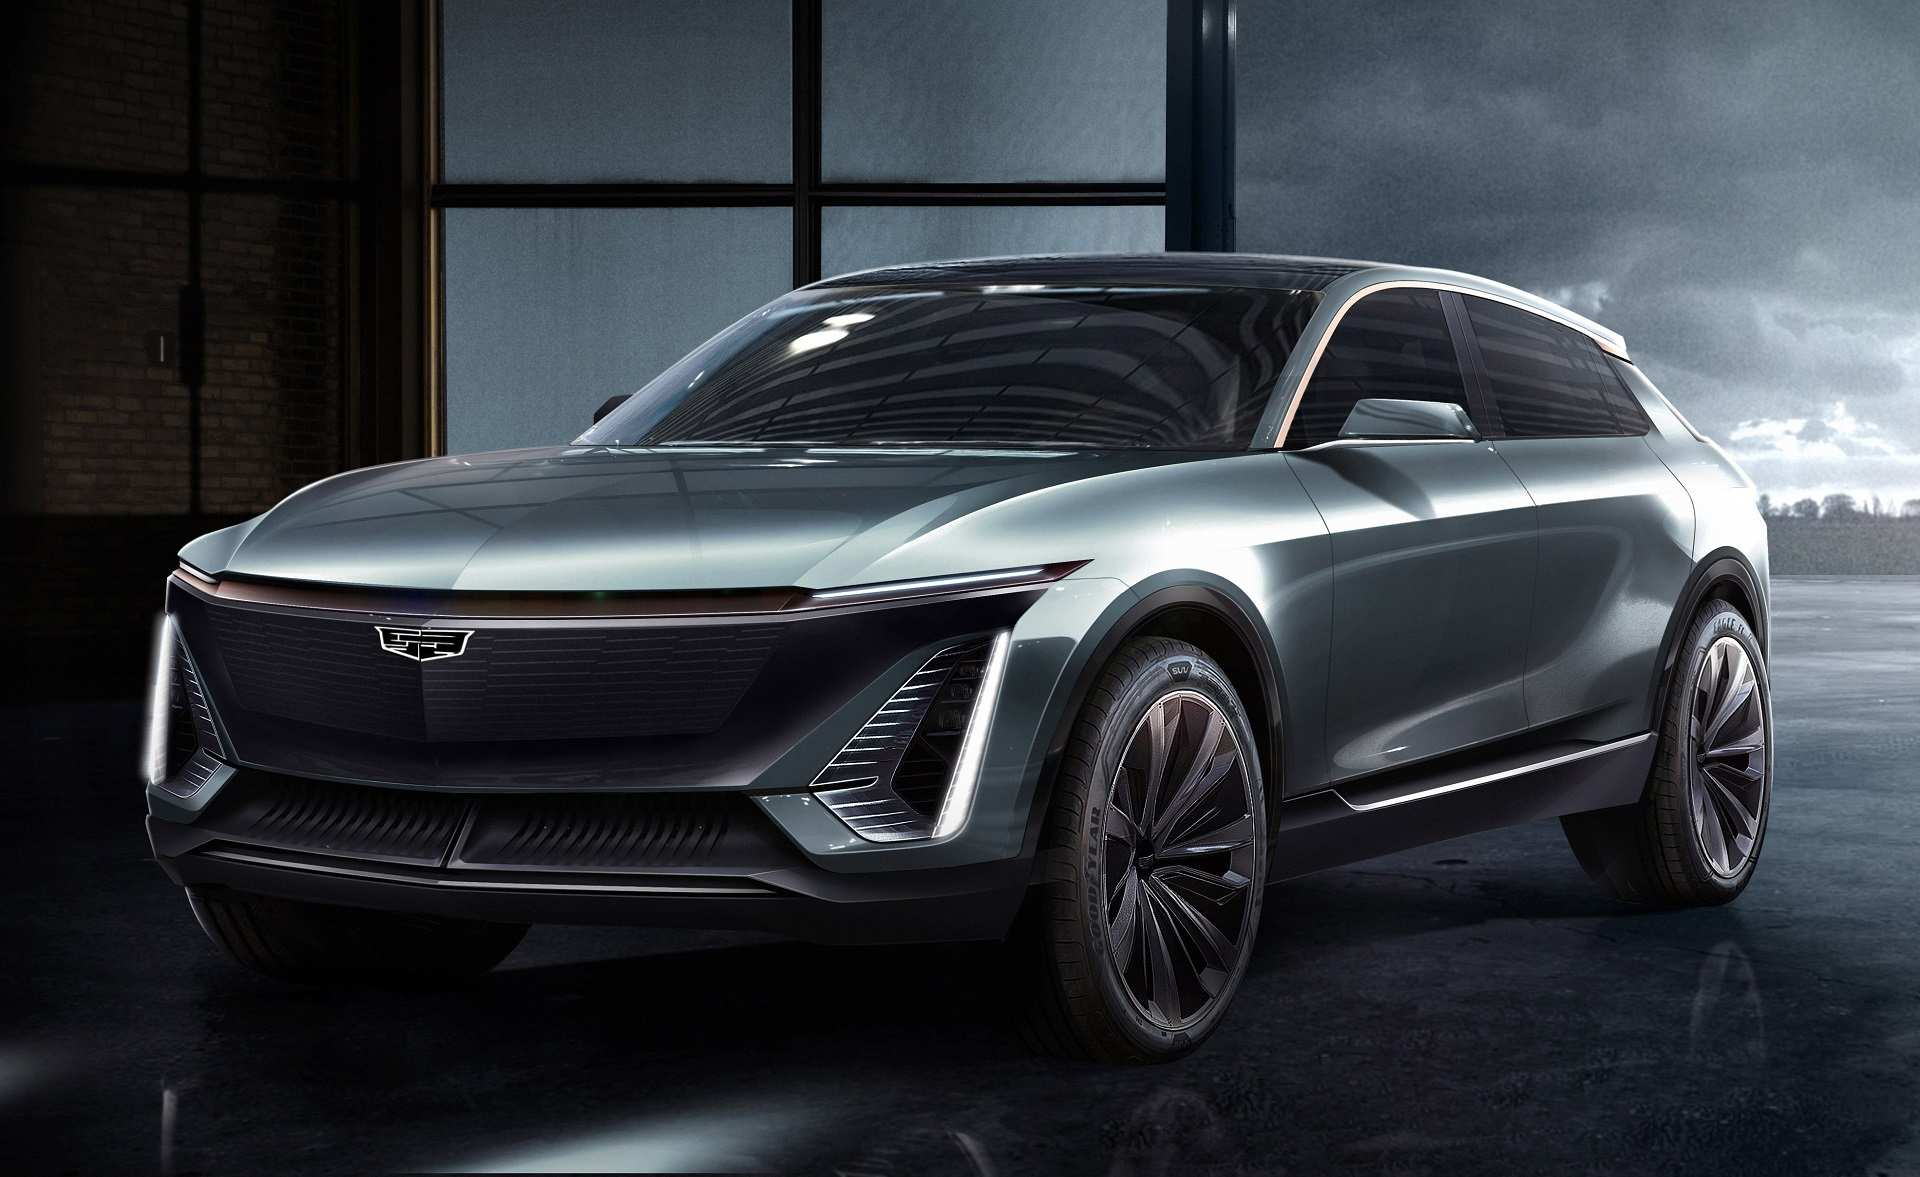 82 Best Review Cadillac Hybrid Suv 2020 Rumors for Cadillac Hybrid Suv 2020